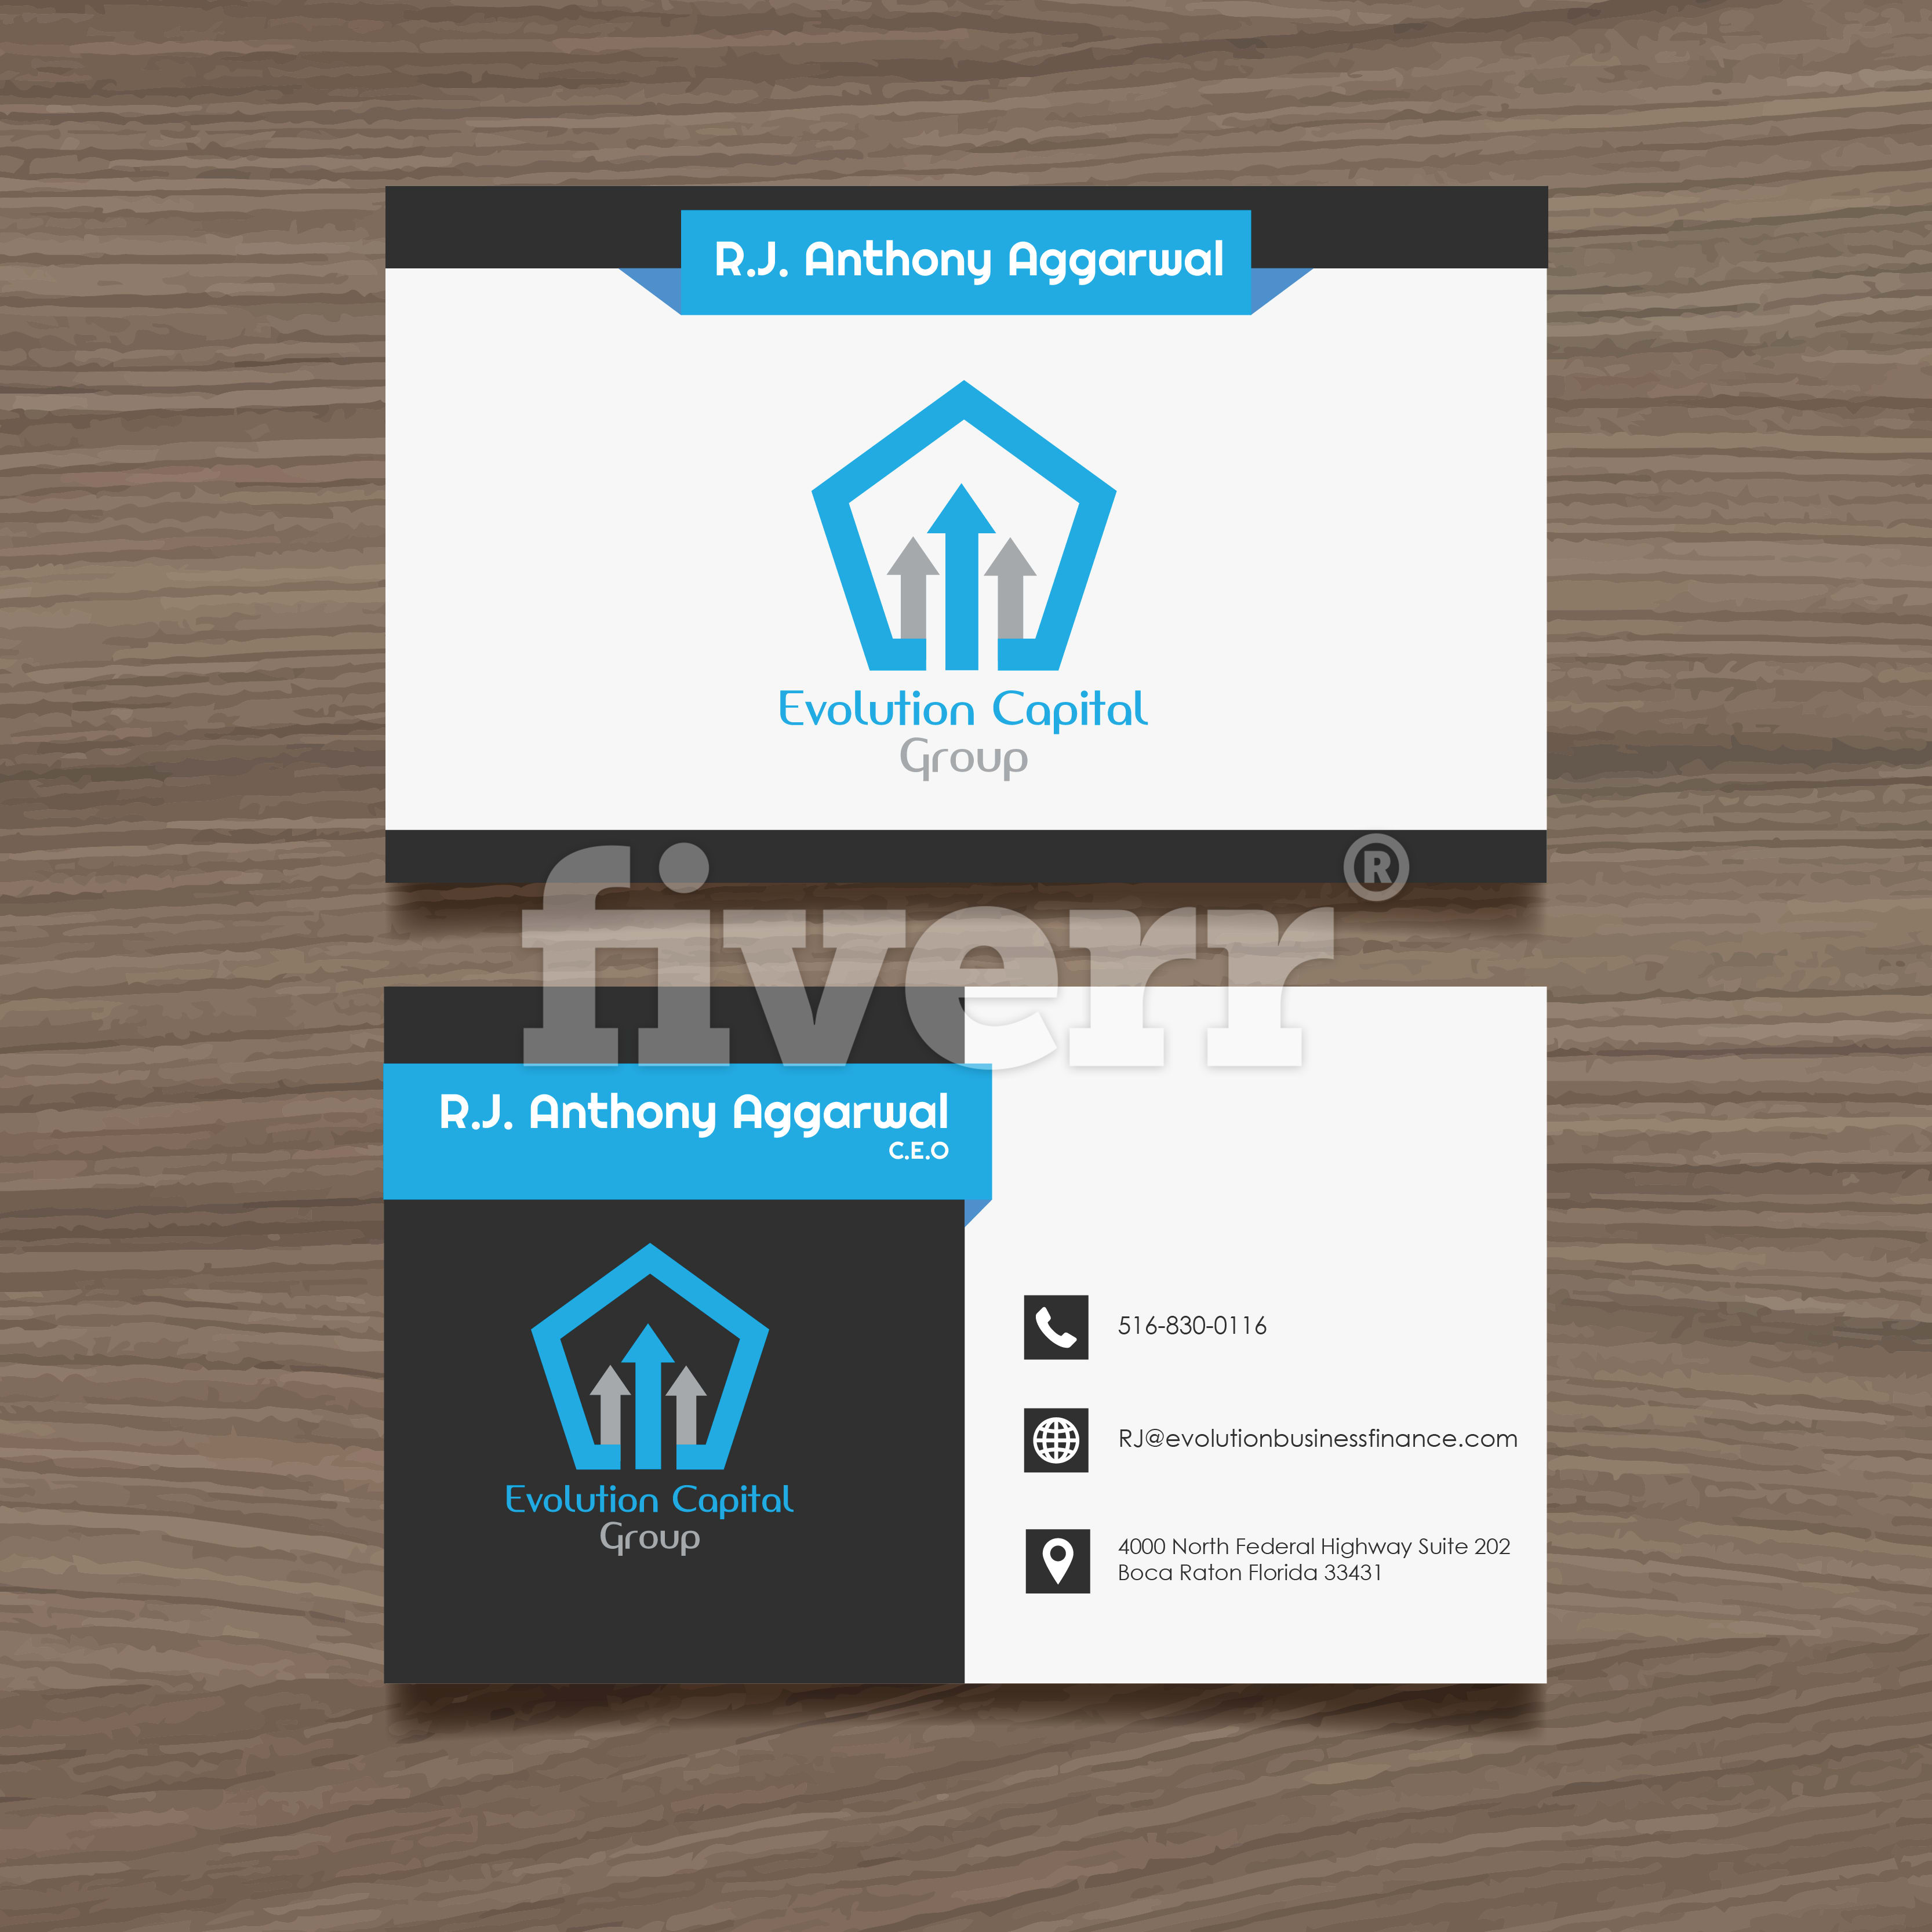 Design double sided professional business card stationery by design double sided professional business card stationery by shaikhsahab reheart